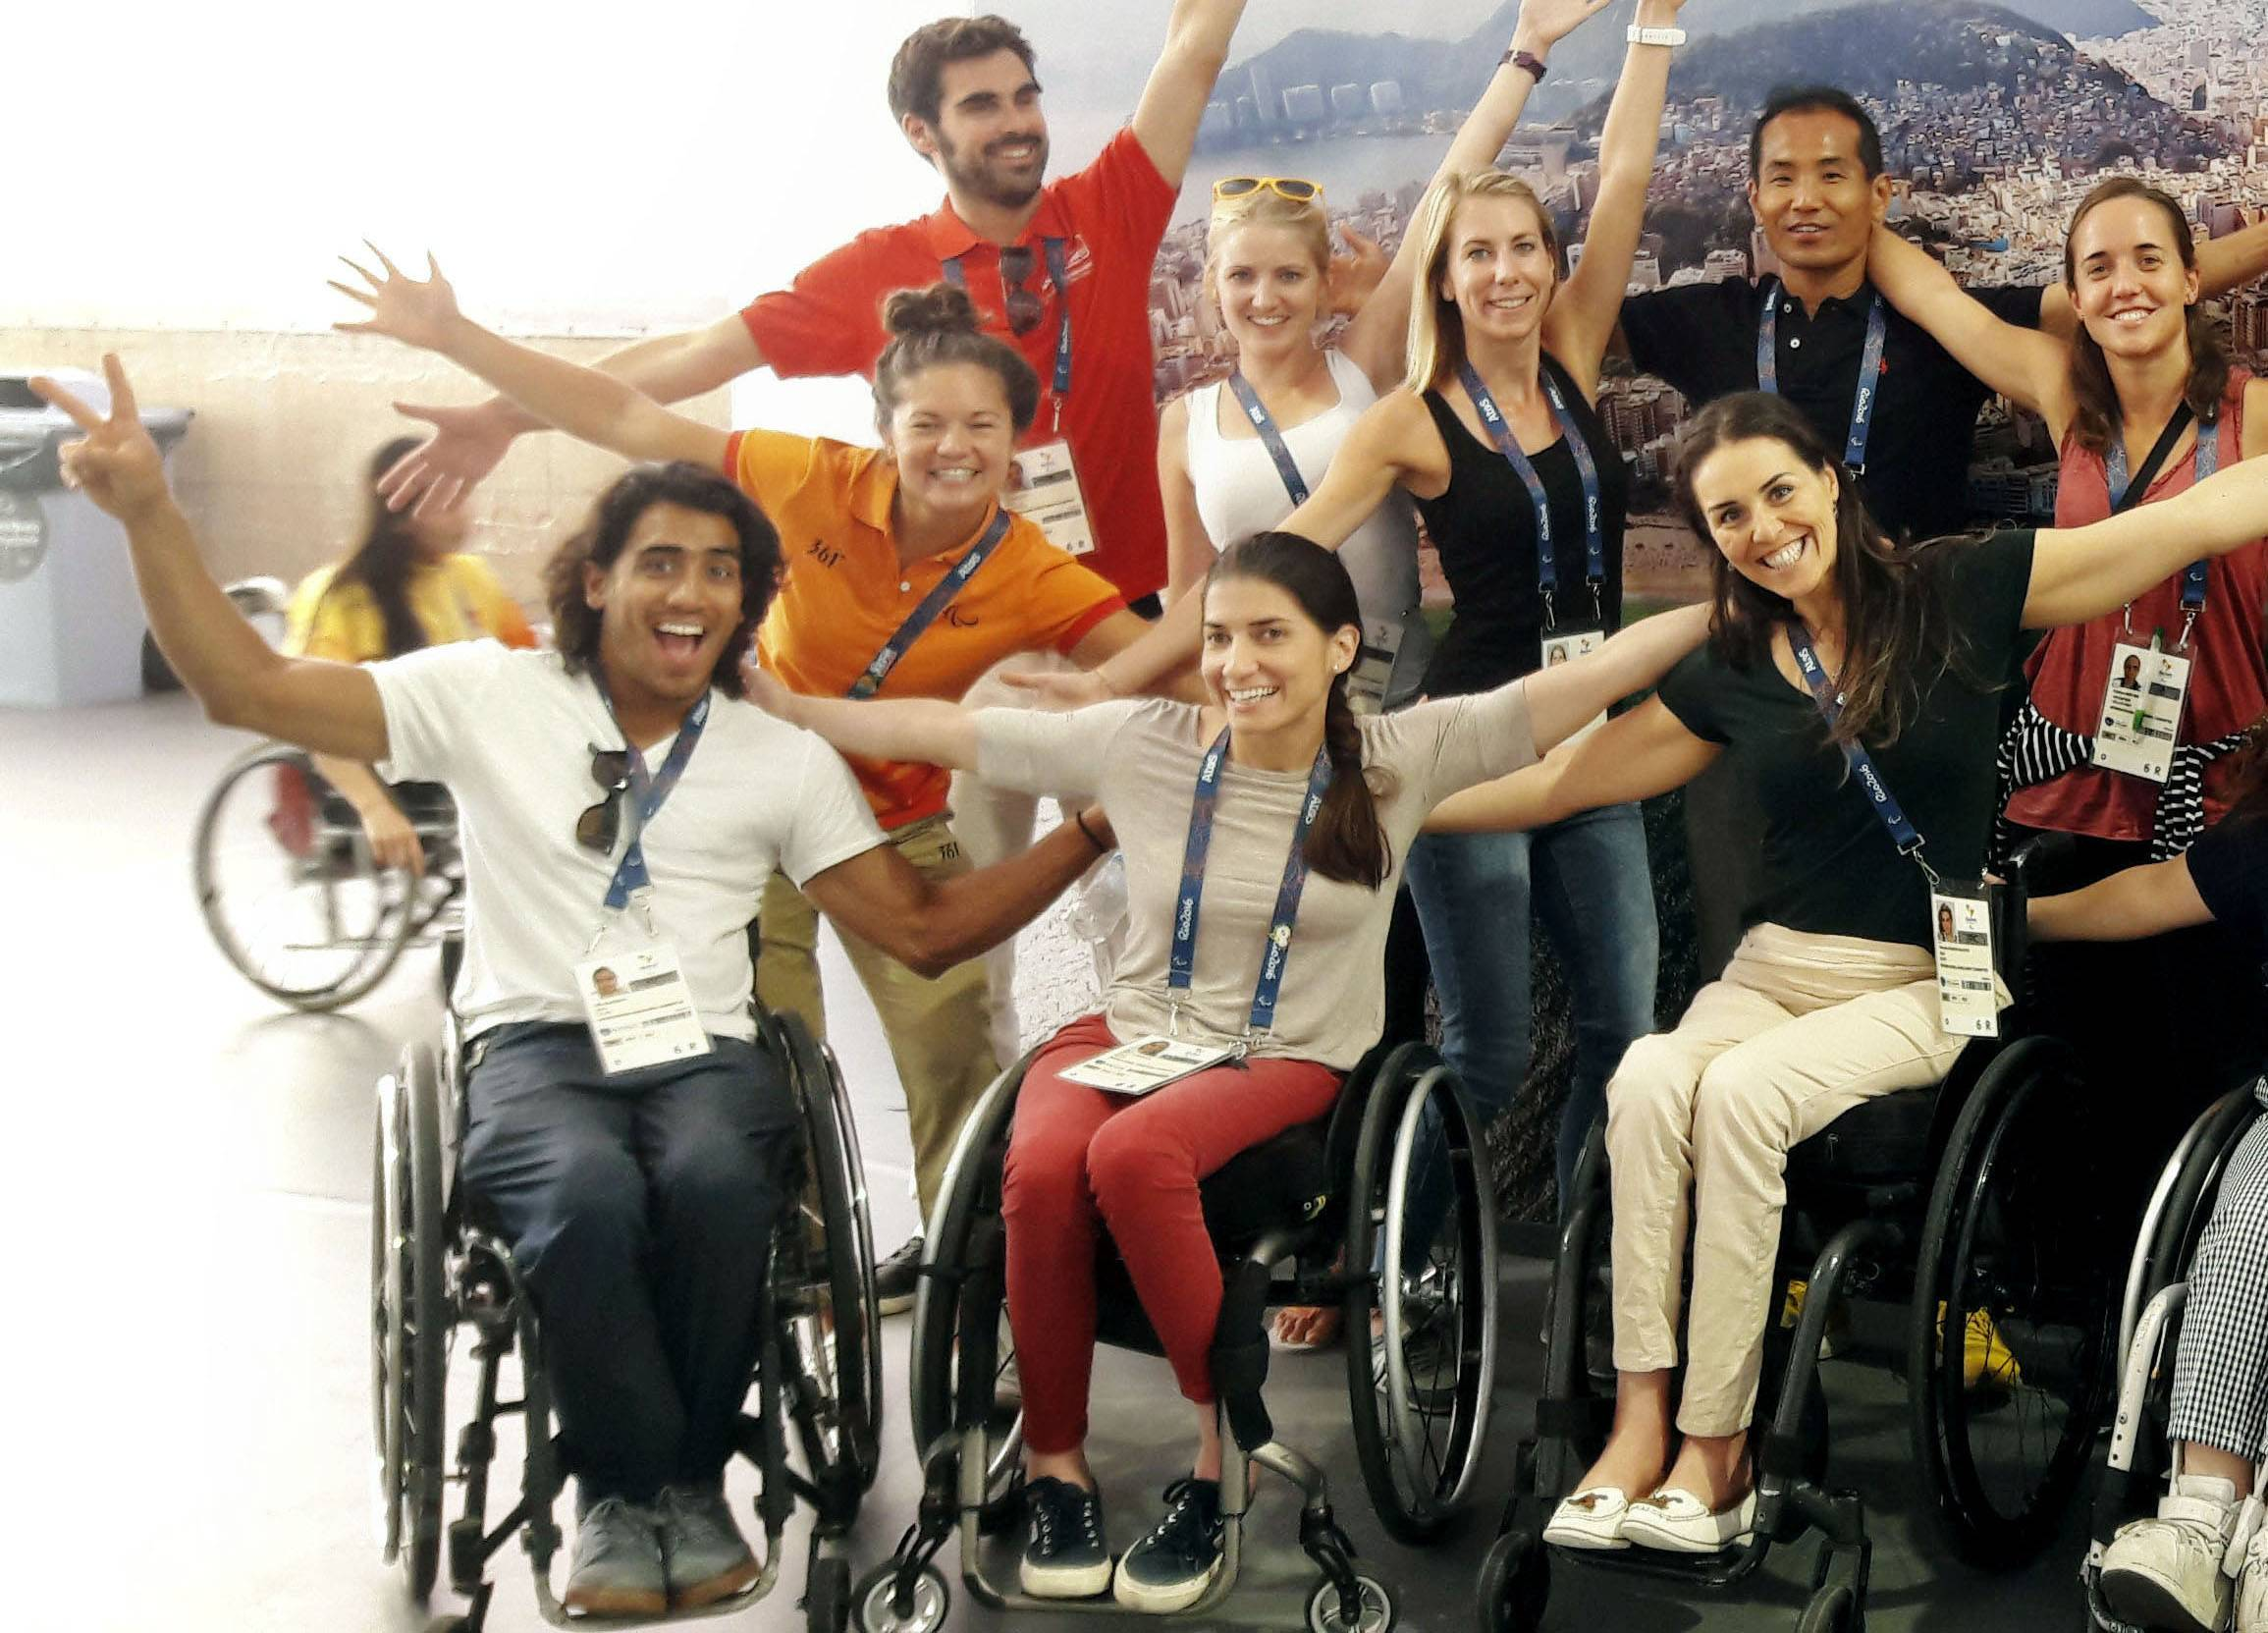 Ileana Rodriguez (seated, center) poses with other staffers of the International Paralympic Committee during the 2016 Summer Paralympics in Rio de Janeiro in September 2016. | ILEANA RODRIGUEZ / VIA KYODO